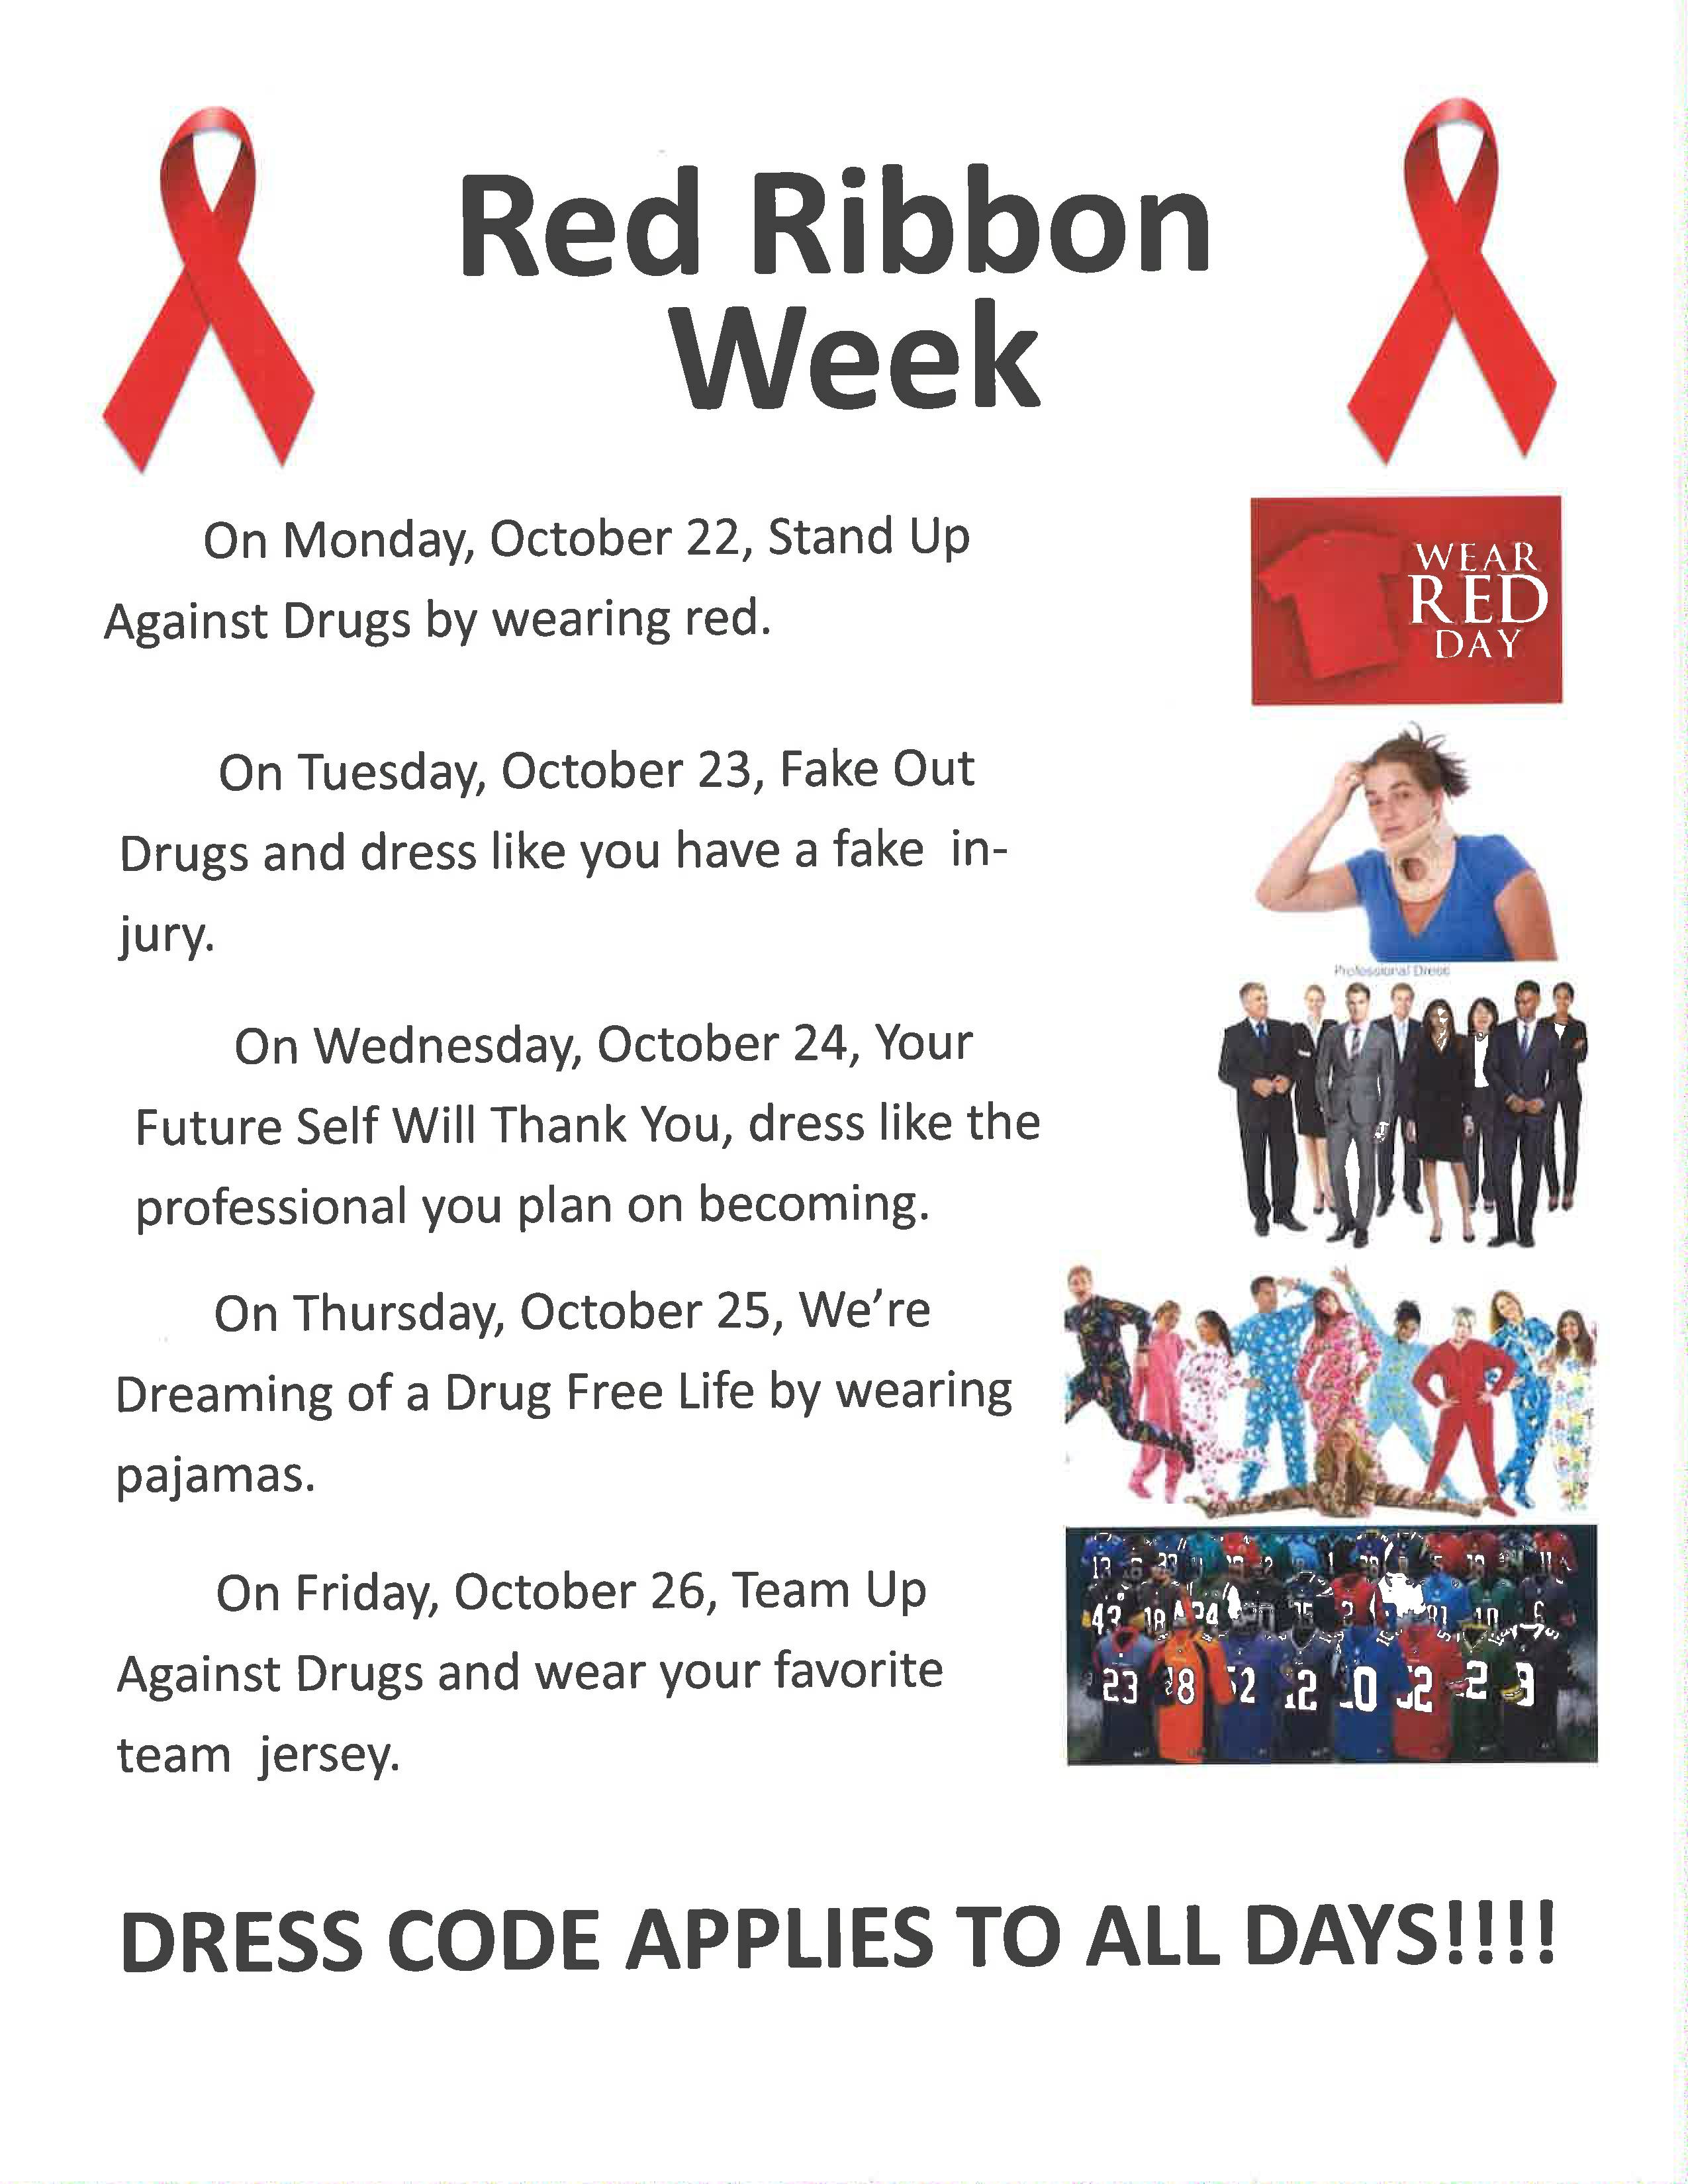 Red Ribbon Week, Monday wear red, Tuesday dress like you have a fake injury, Wednesday dress like a professional, Thursday, wear pajamas, Friday wear your favorite team jersey